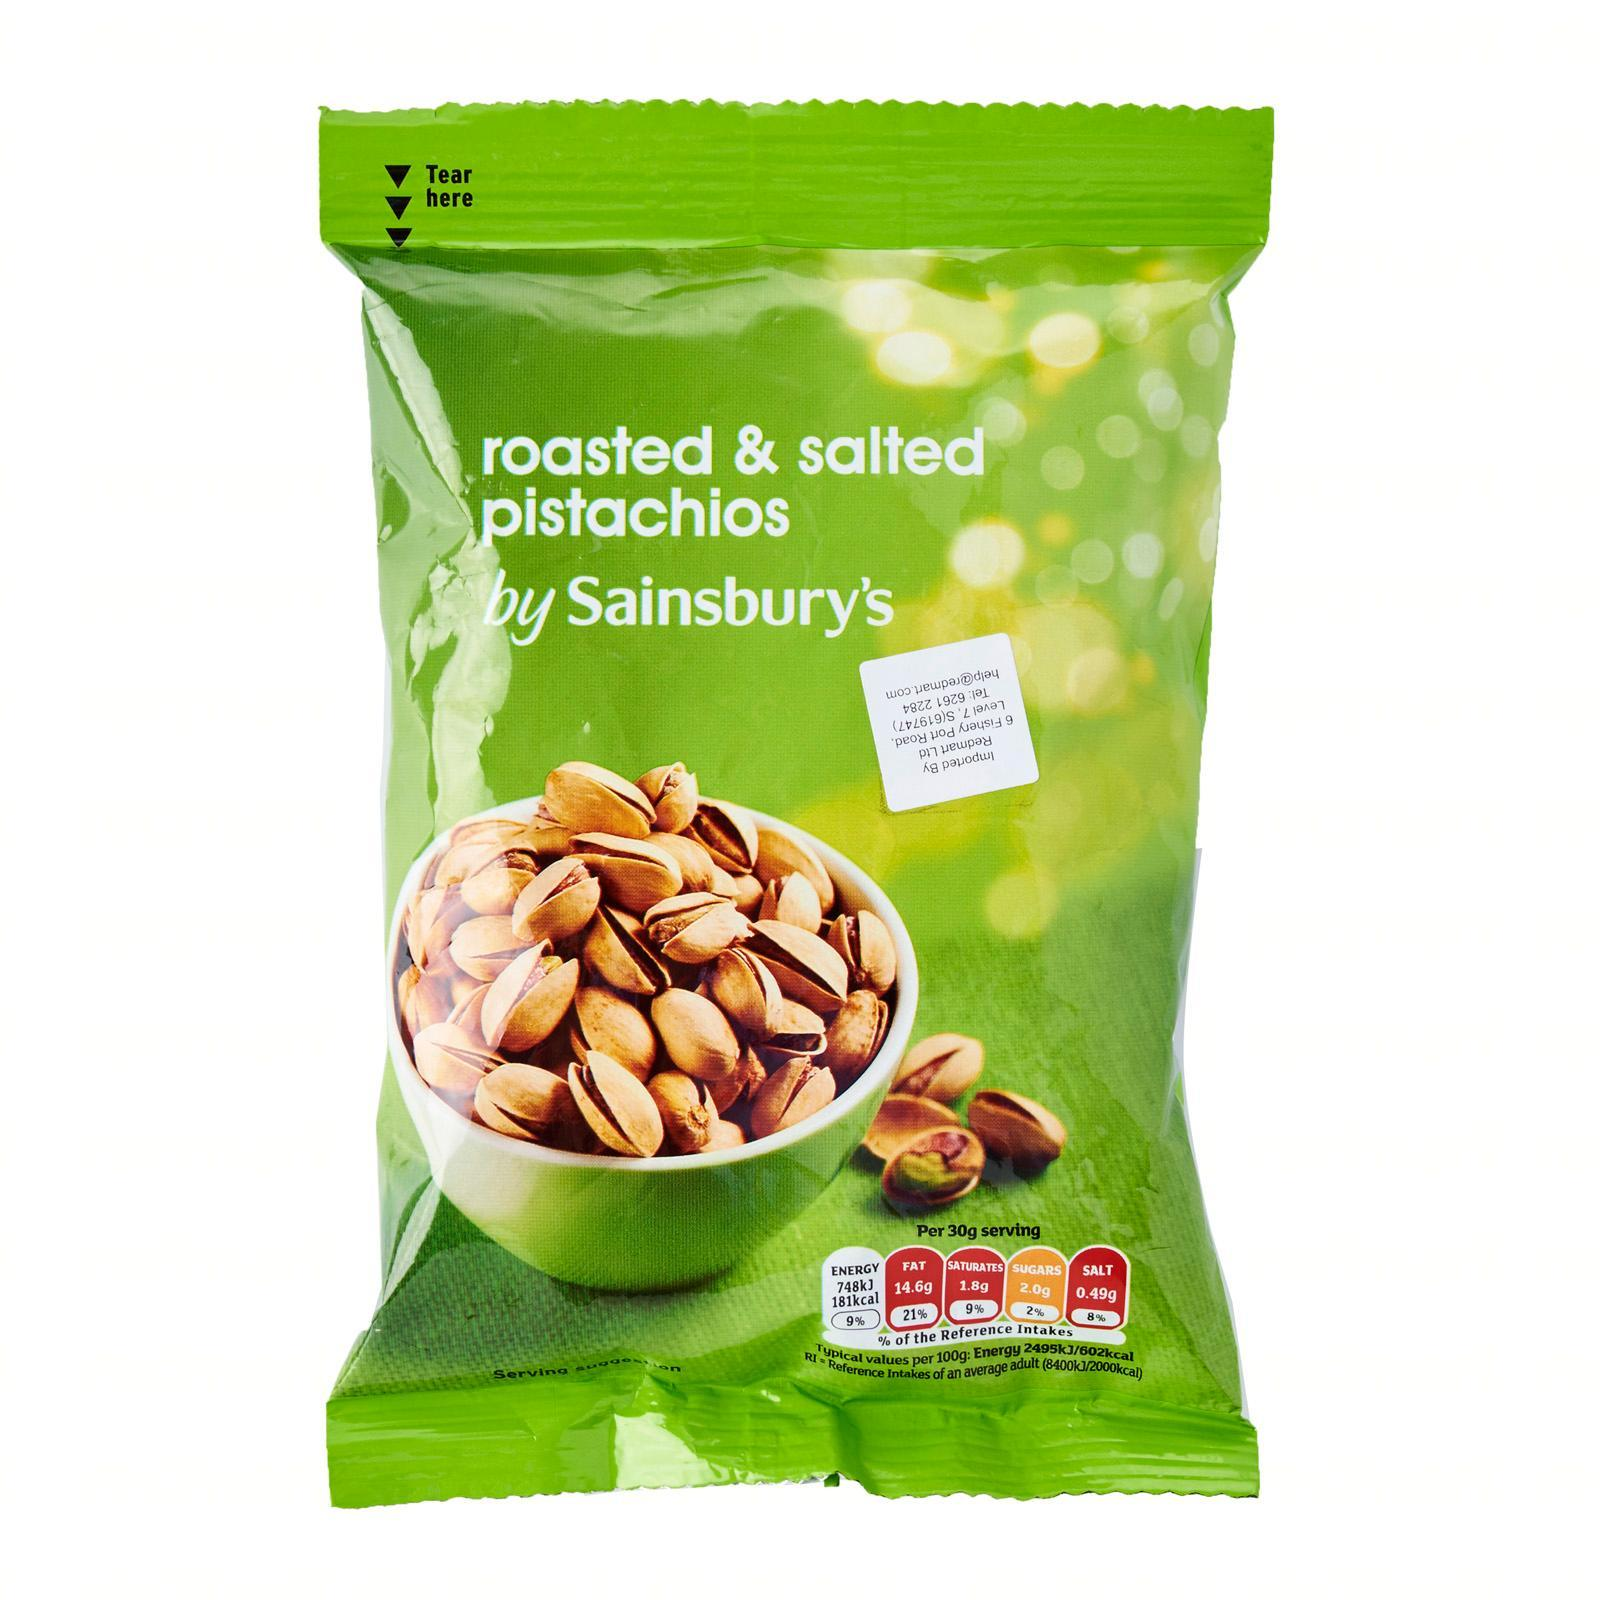 Sainsbury's Roasted And Salted Pistachios